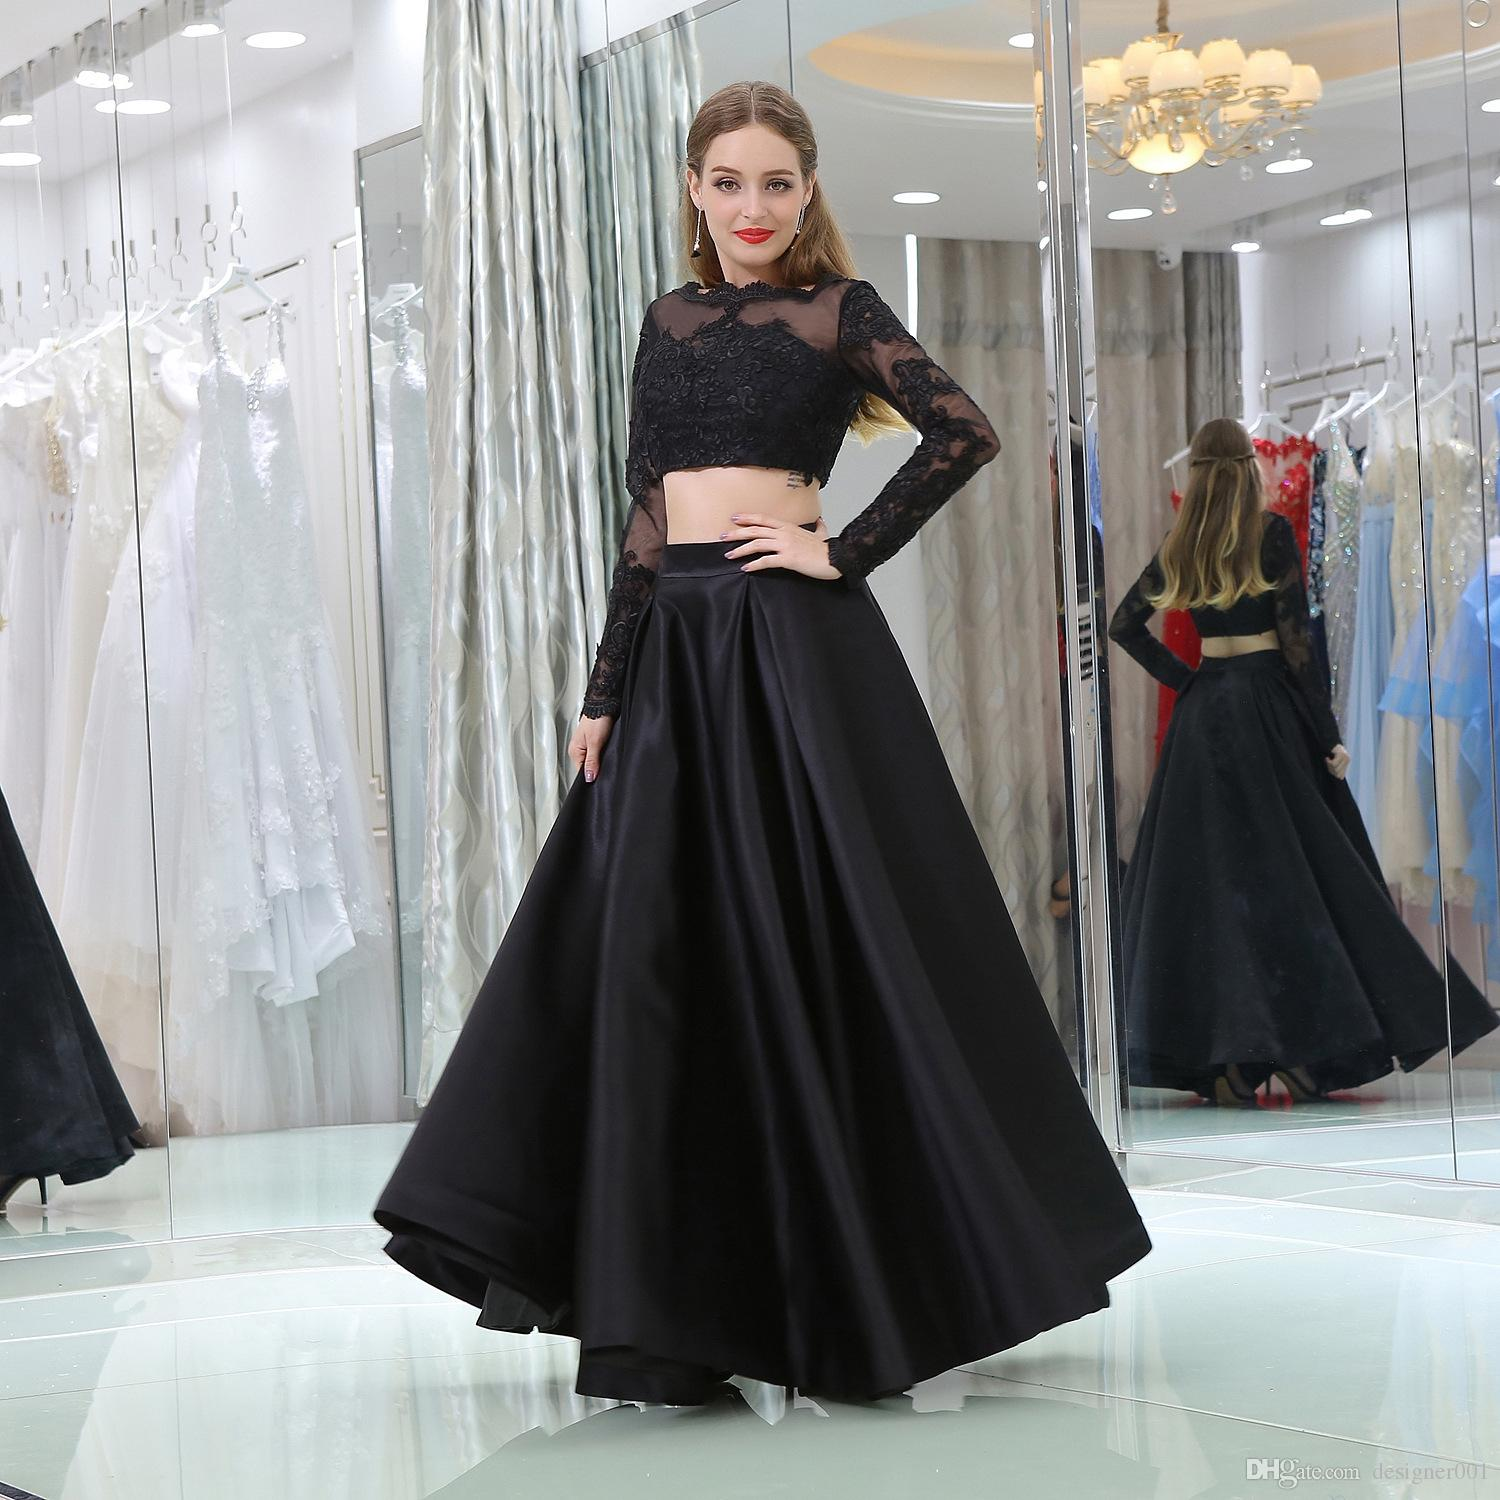 ea7a0bf943 2019 New Sheer Neck Two Pieces Prom Dresses With Long Sleeves Elegant Satin  Floor Length Evening Gowns Formal Party Dress Custom Made Short Prom Dresses  ...